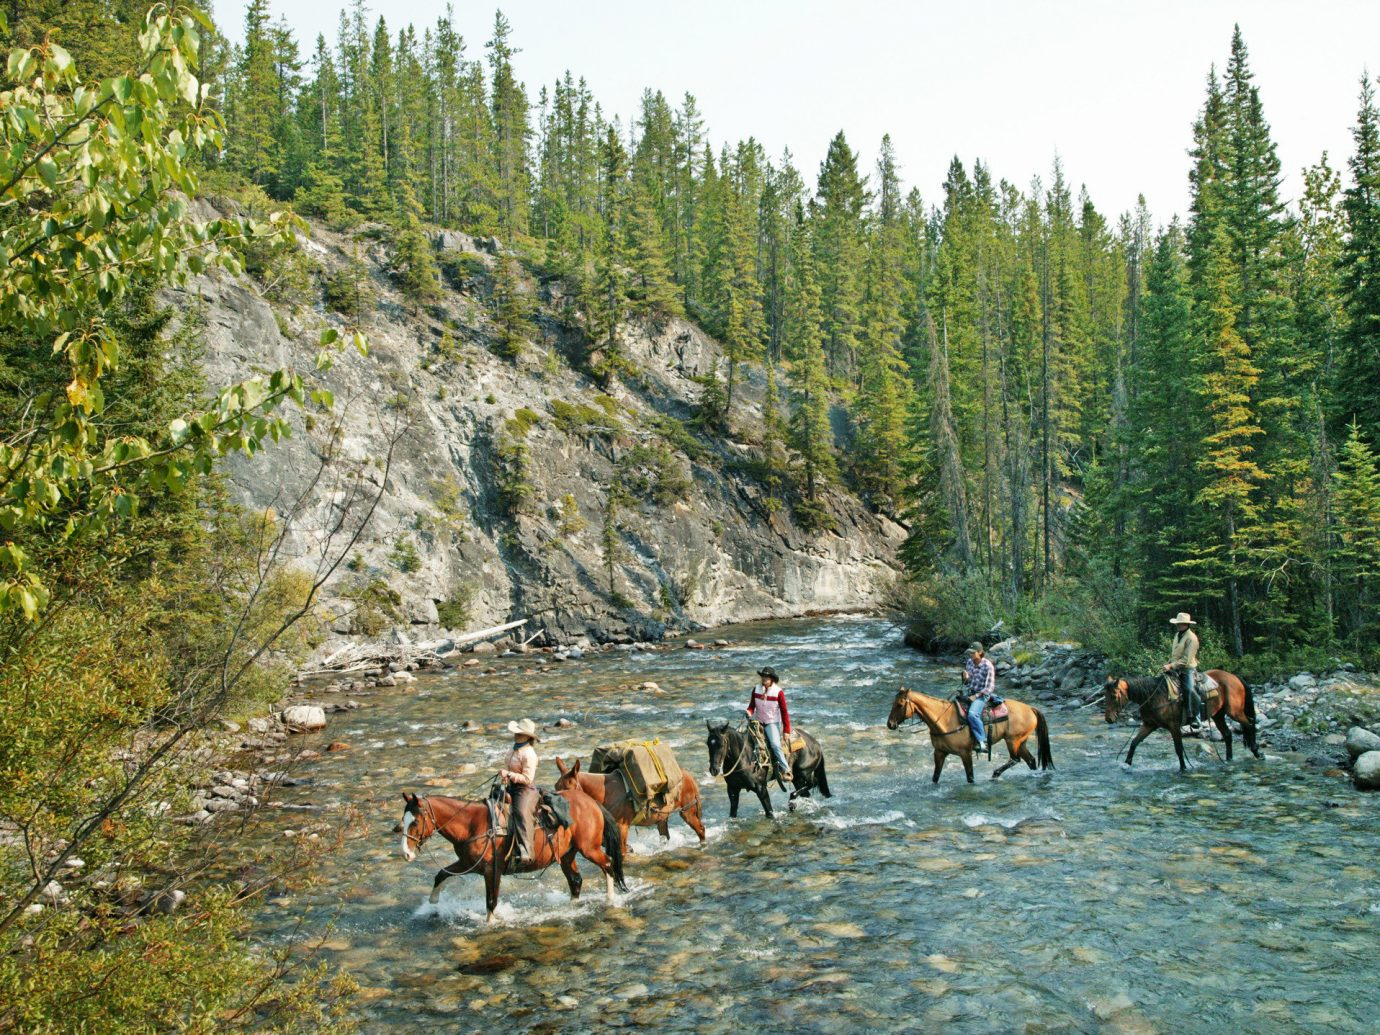 Mountains + Skiing National Parks Outdoors + Adventure Trip Ideas Weekend Getaways tree outdoor horse wilderness ecosystem River sports outdoor recreation group people walking Lake valley rapid Forest wooded several